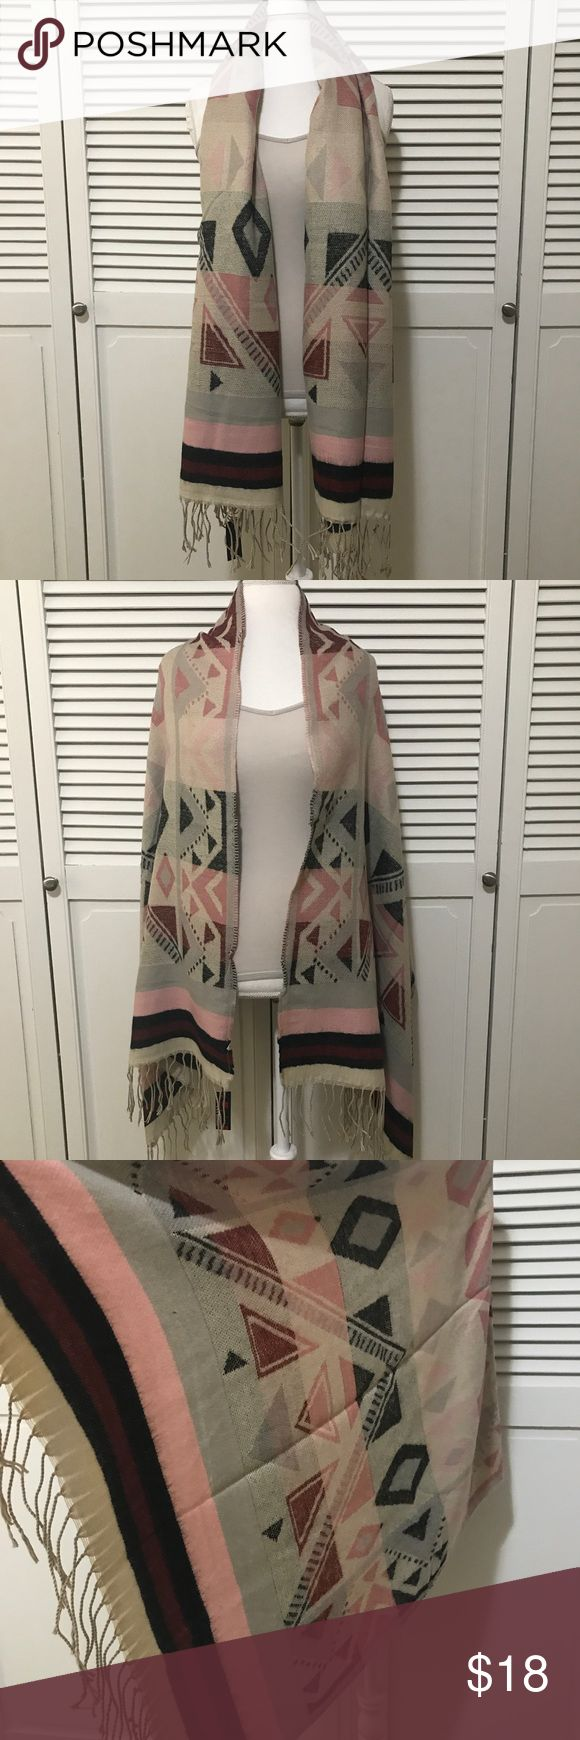 Beautiful Aztec Scarf Shawl with Tassel Accents ❤️ Beautiful Aztec Print Scarf with tassel detail. Can be worn as a scarf or shawl. Made of 100% Acrylic.   ❤️ Condition: New with tag. In original packaging.   ❤️ Fast Shipping (I ship daily!)  ❤️ Offers are always welcome! Lava Accessories Scarves & Wraps